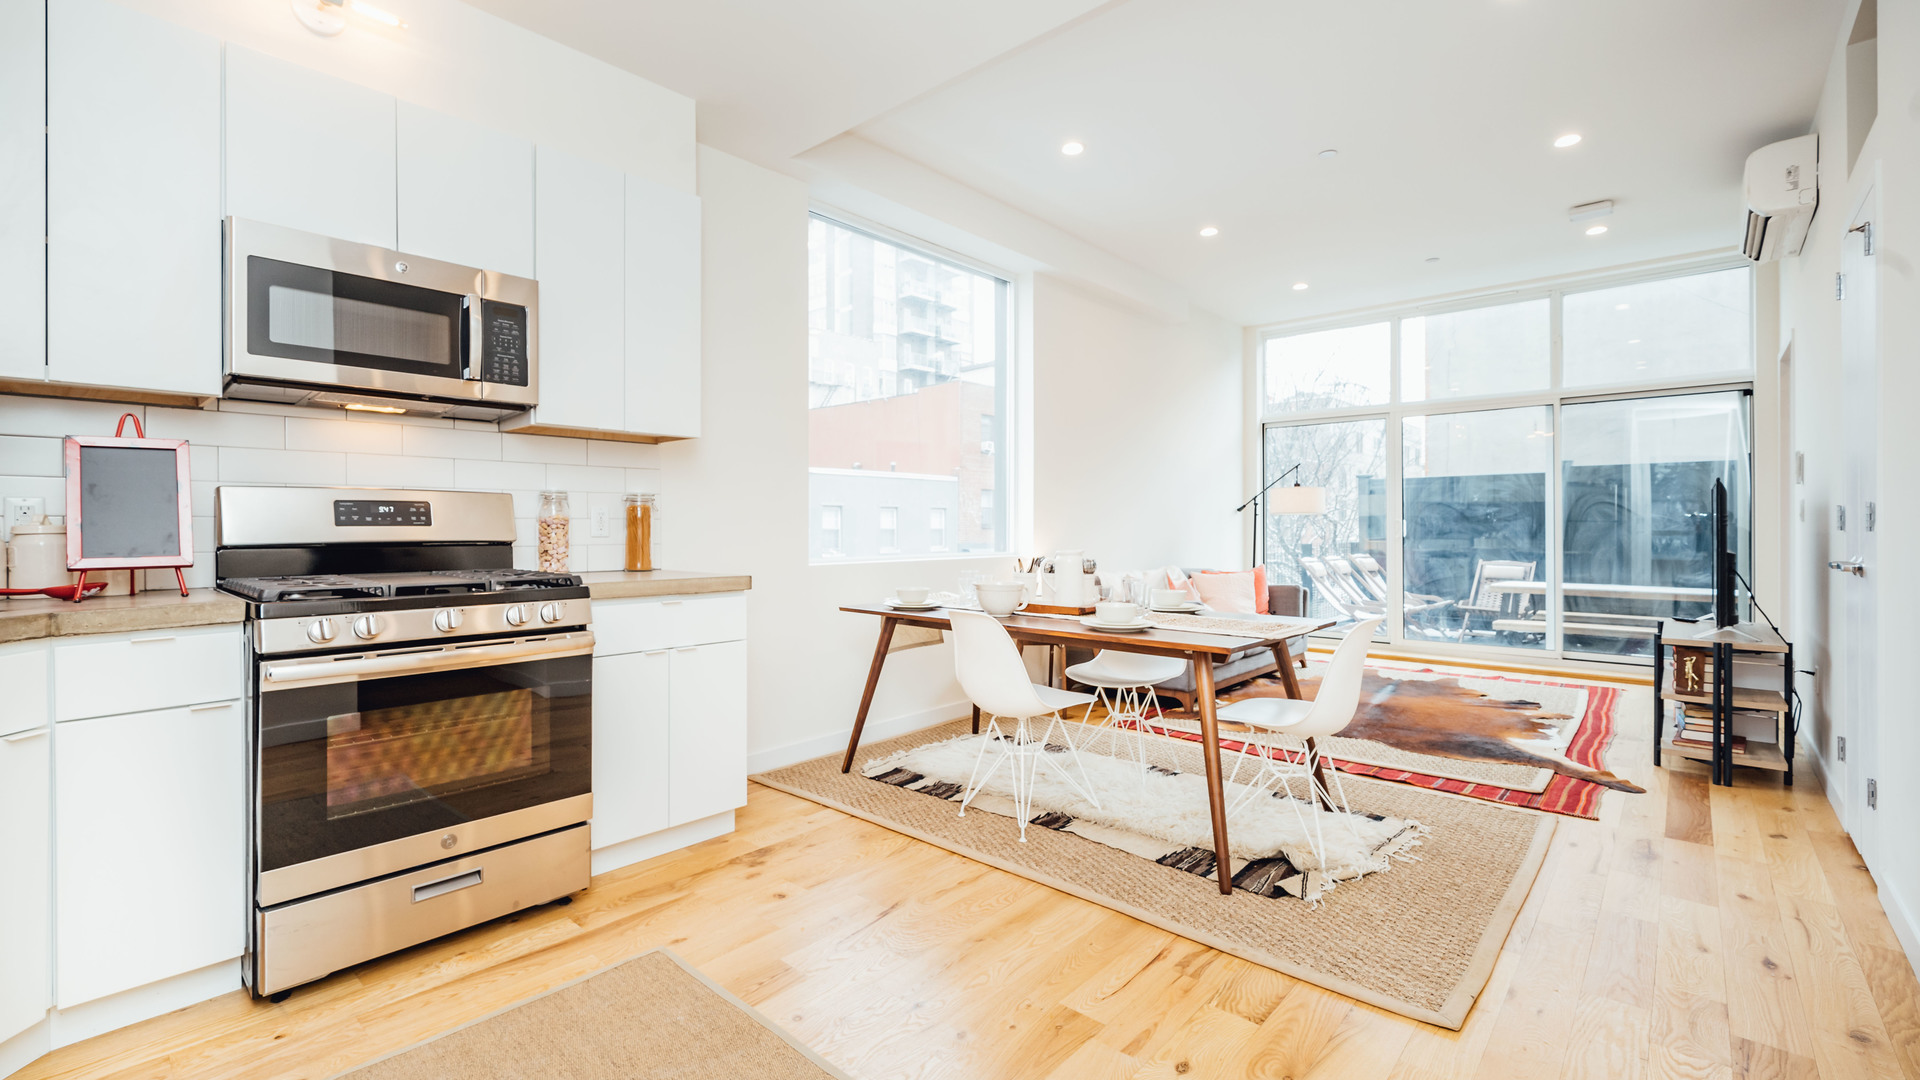 58 marcy ave 04